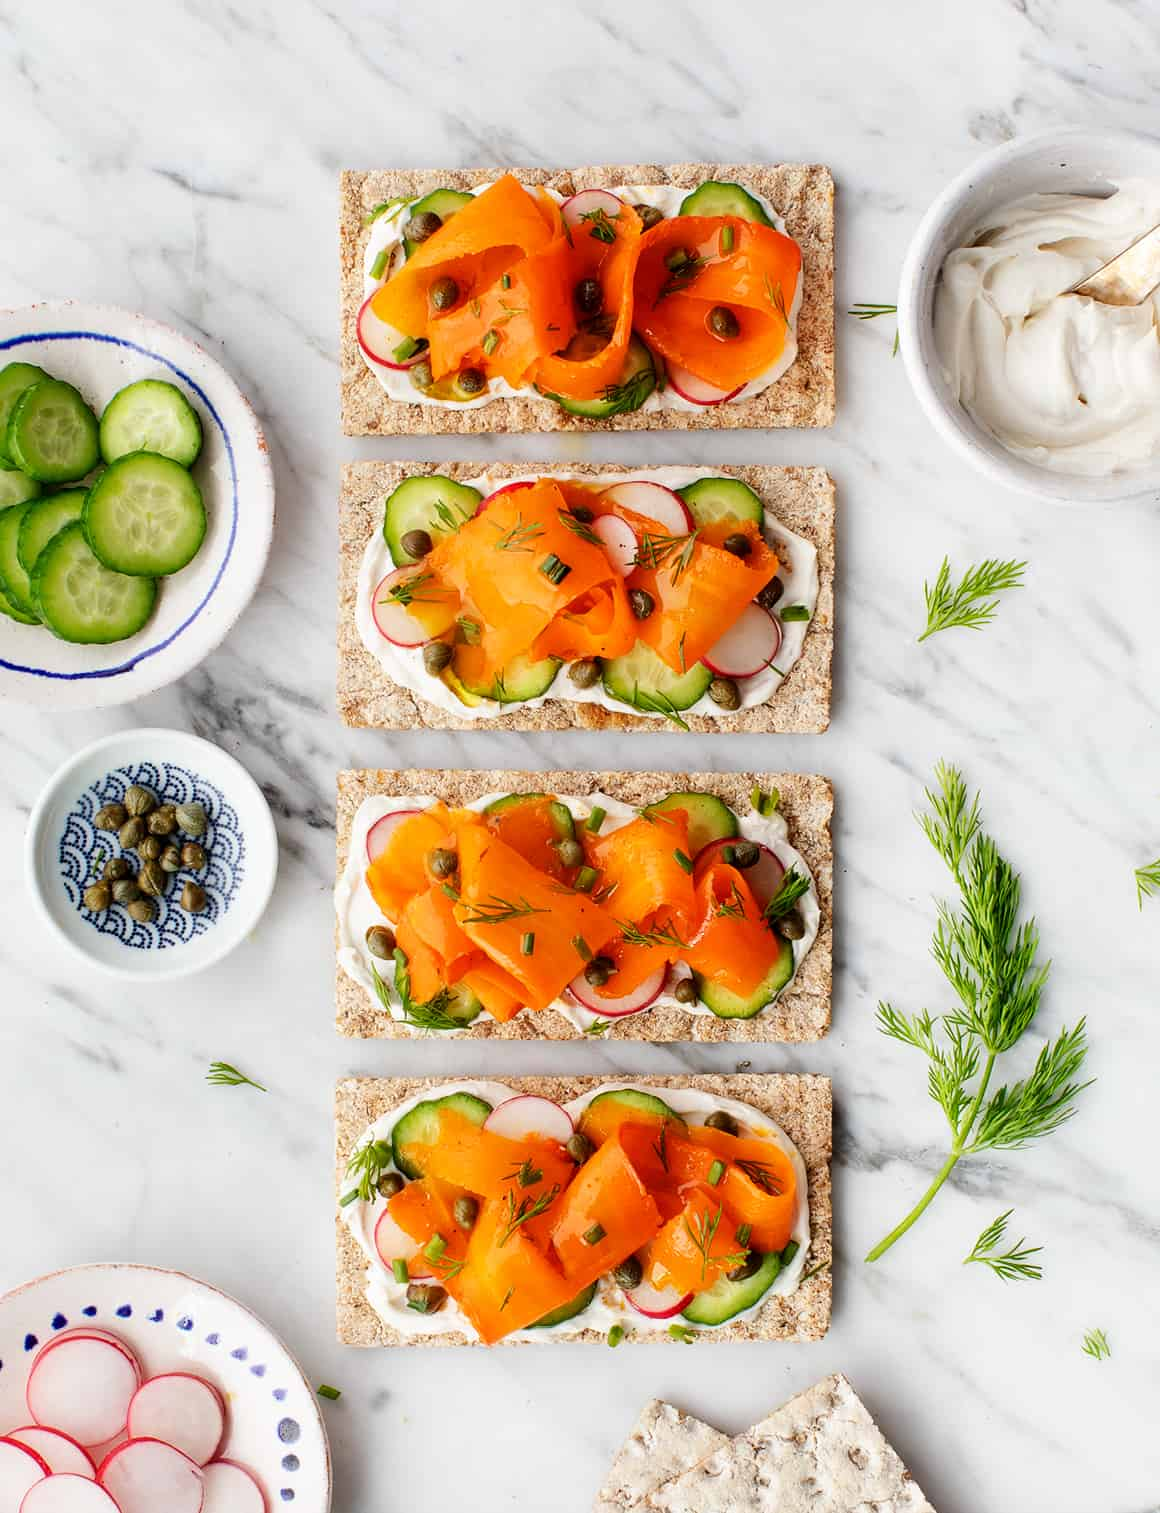 Inspired By Open Faced Danish Smrrebrd Sandwiches I Made An All Veggie Version Using Smoky Roasted Marinated Carrots Instead Of Salmon